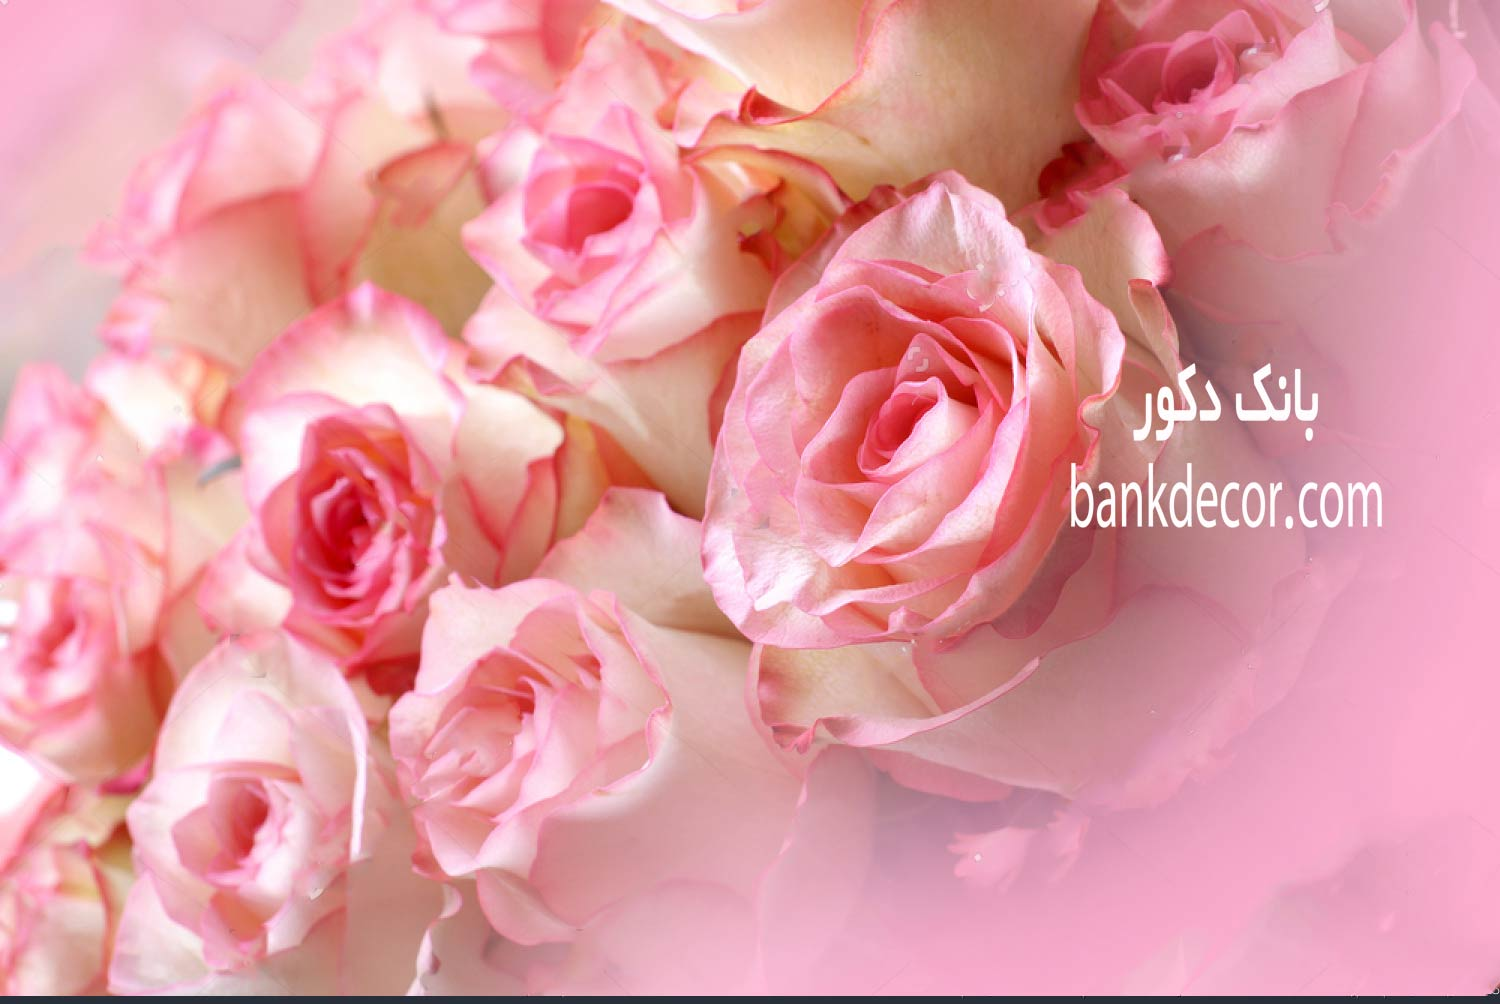 stock-photo-large-bright-bouquet-of-freshly-cut-big-beautiful-white-pink-roses-259610.jpg